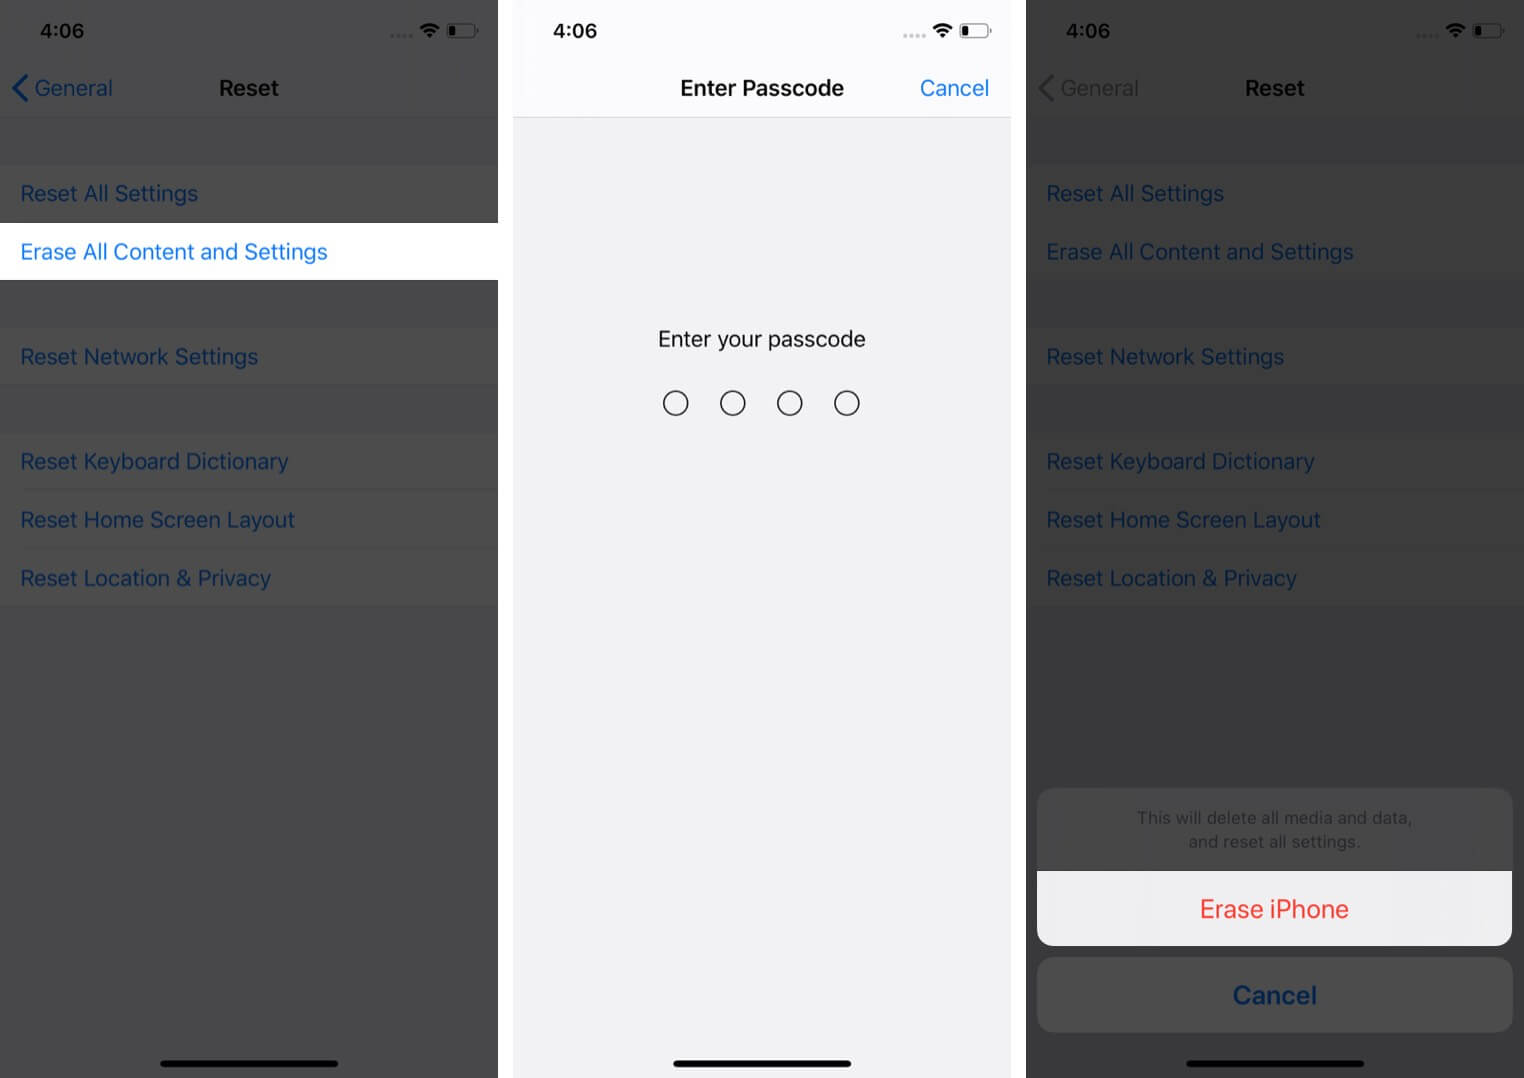 erase all content and settings from iphone